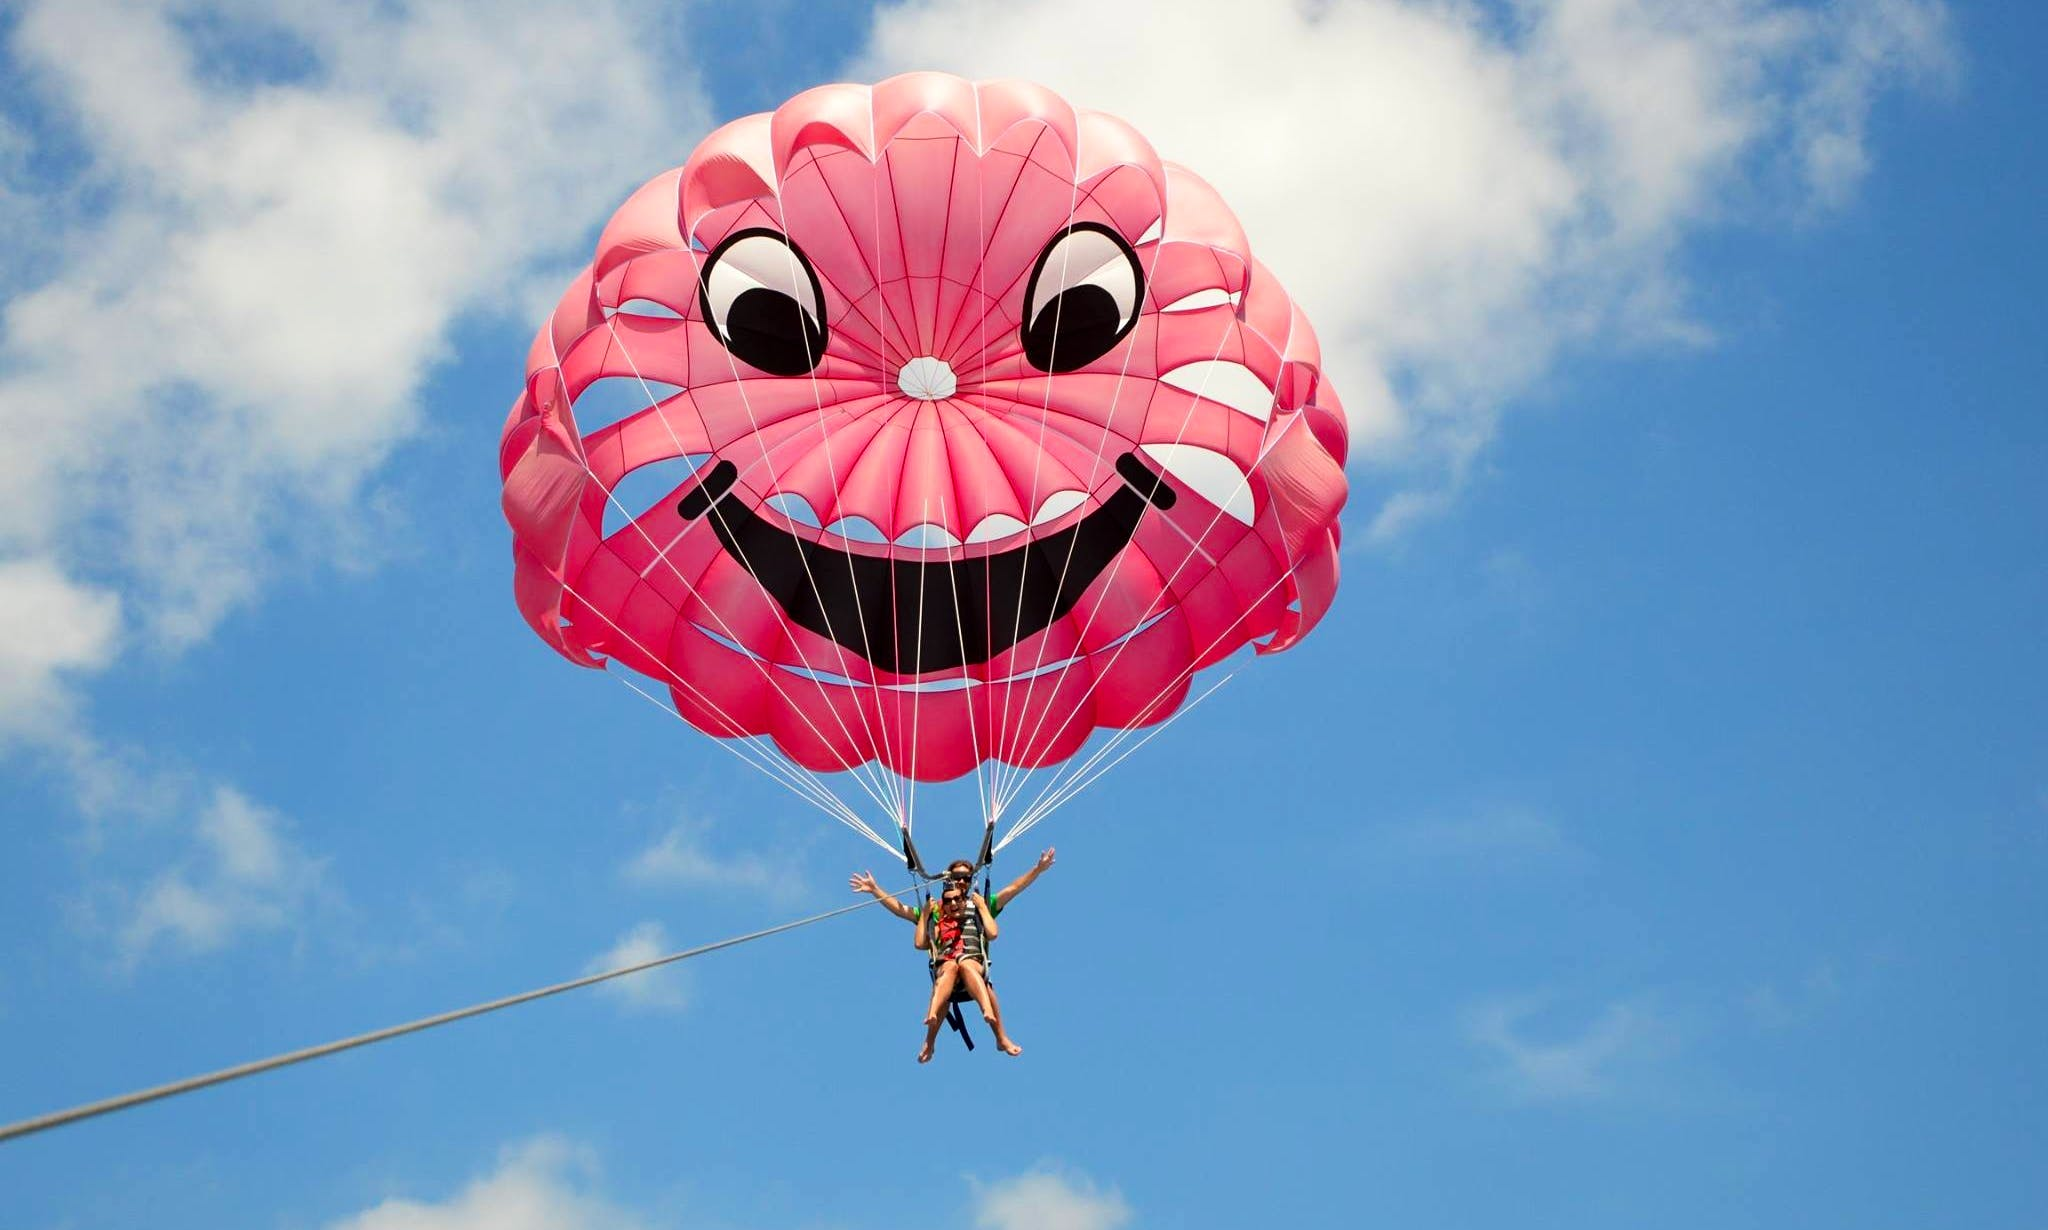 Parasailing Adventure for 2 People in Budva, Montenegro